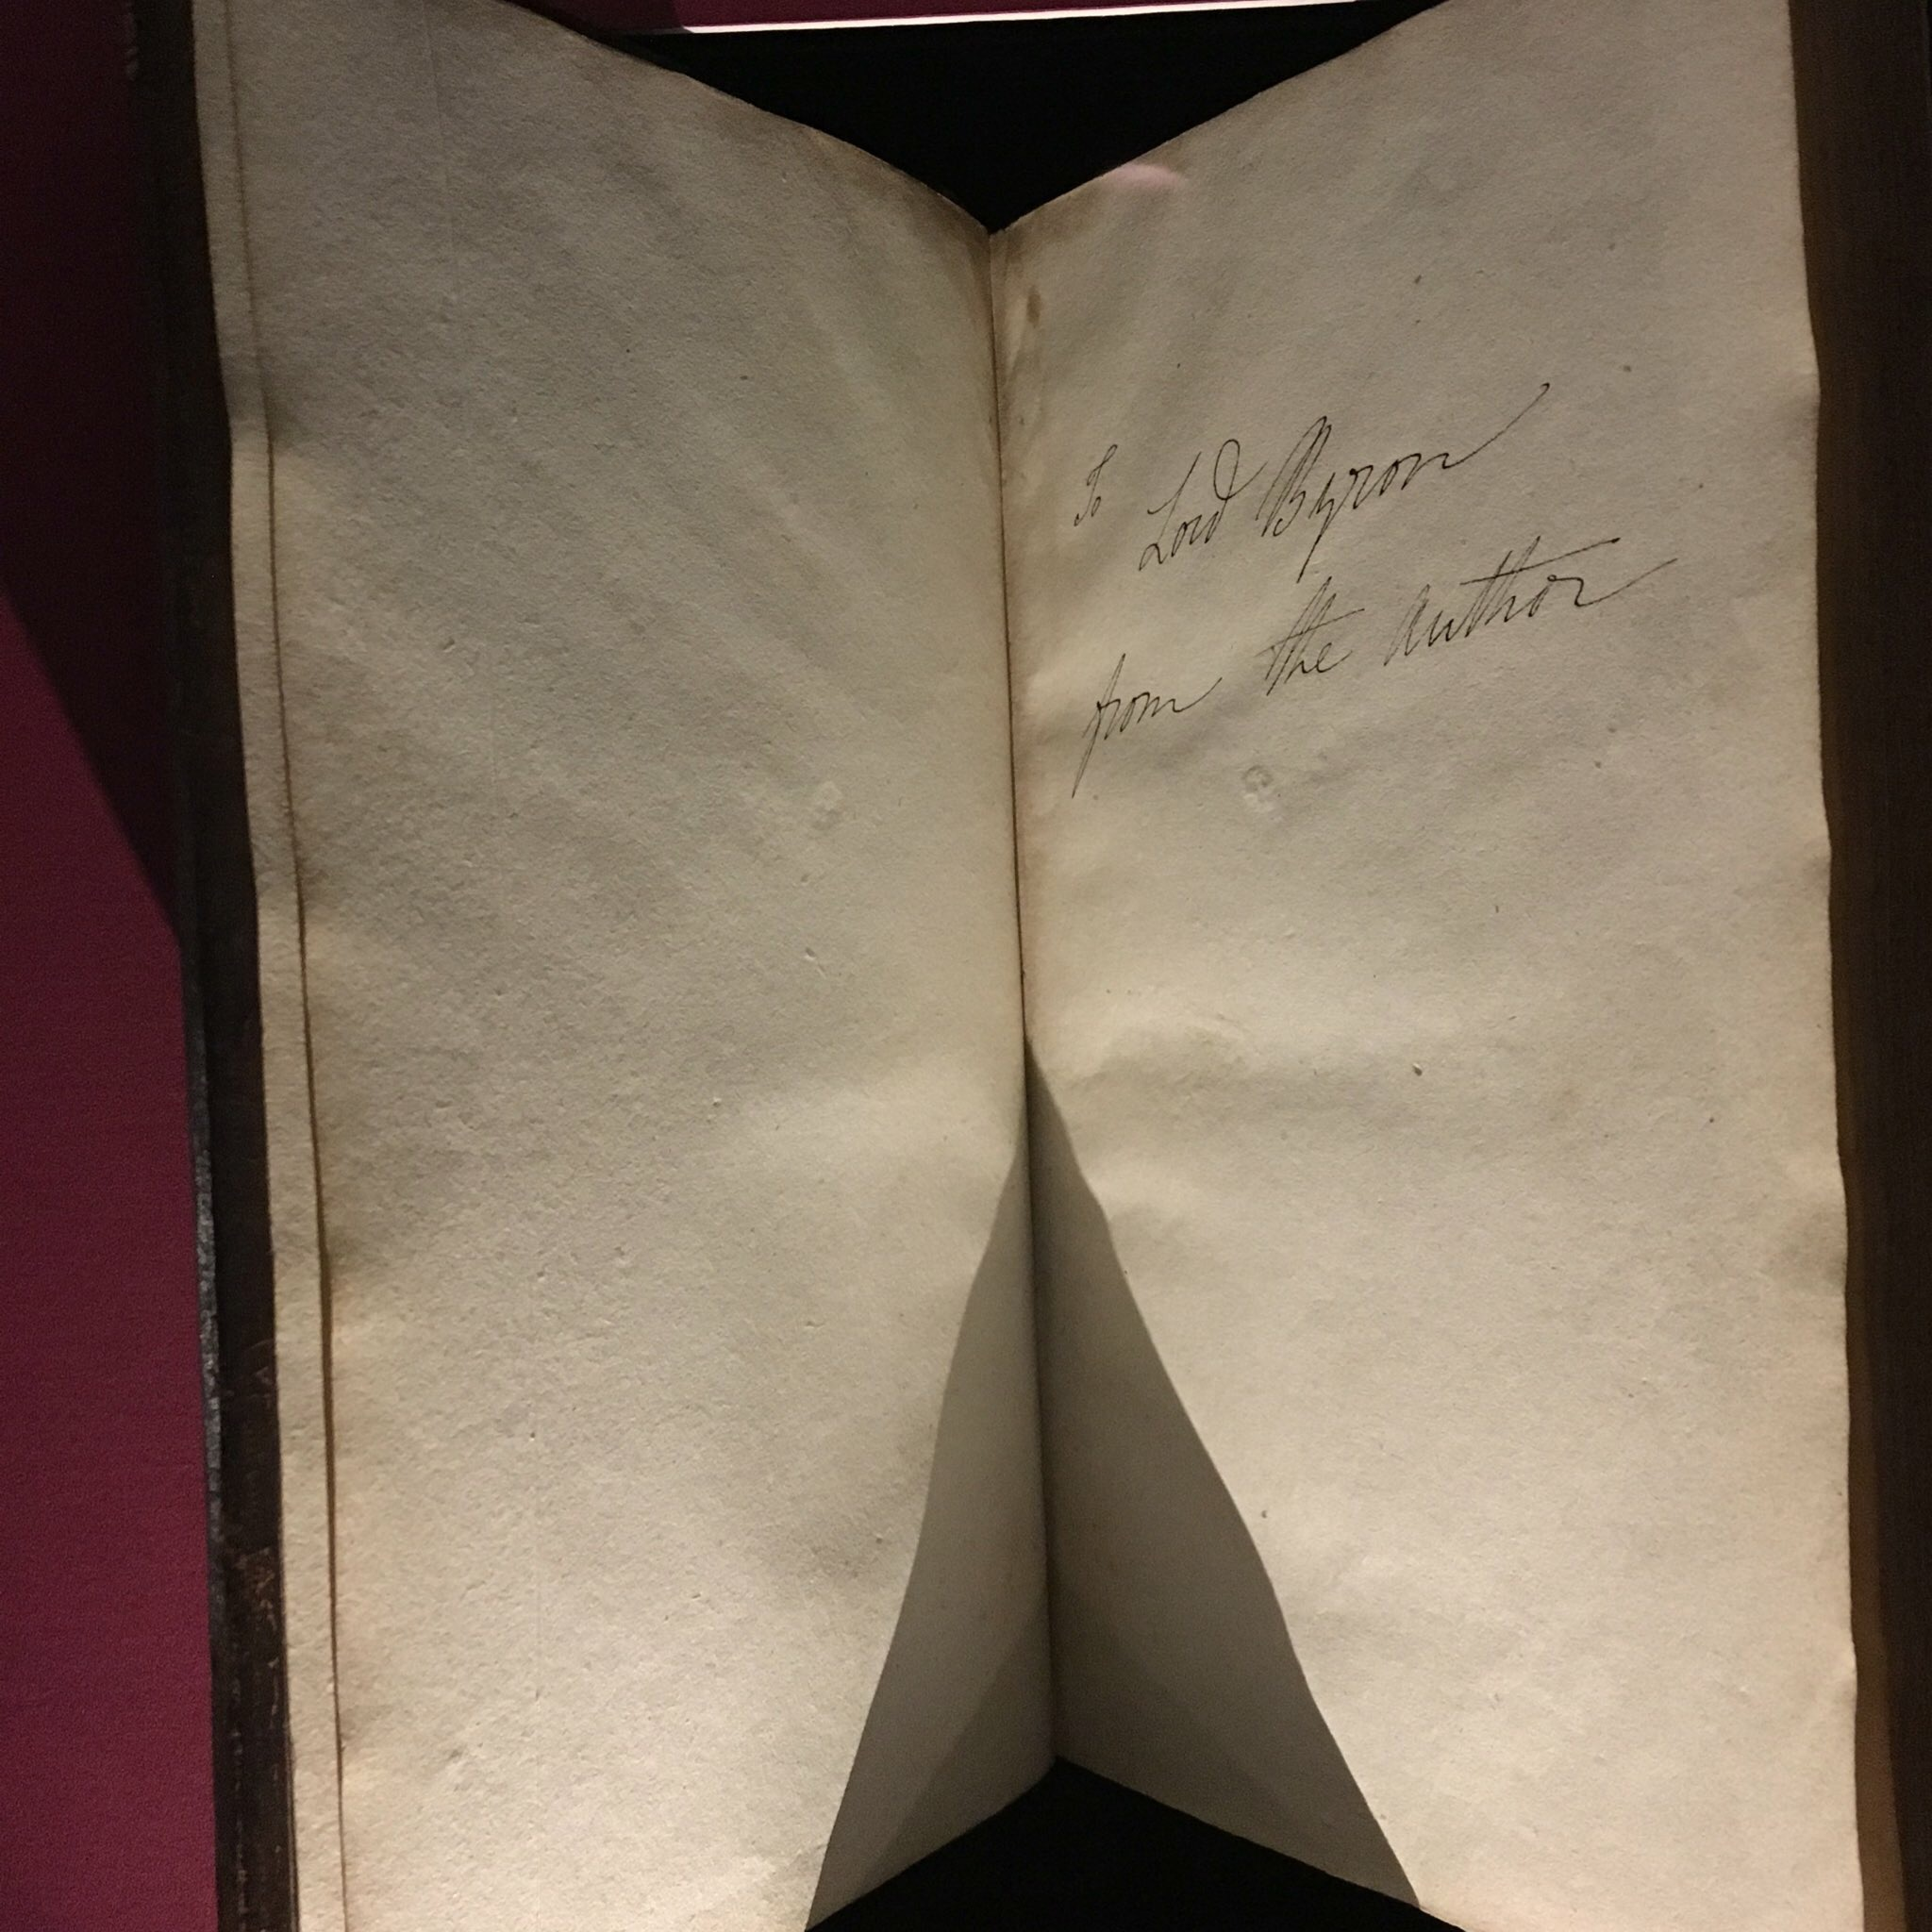 Dedication by Mary to Lord Byron of a copy of Frankenstein. (On Display at the Bodmer Foundation, Geneva)